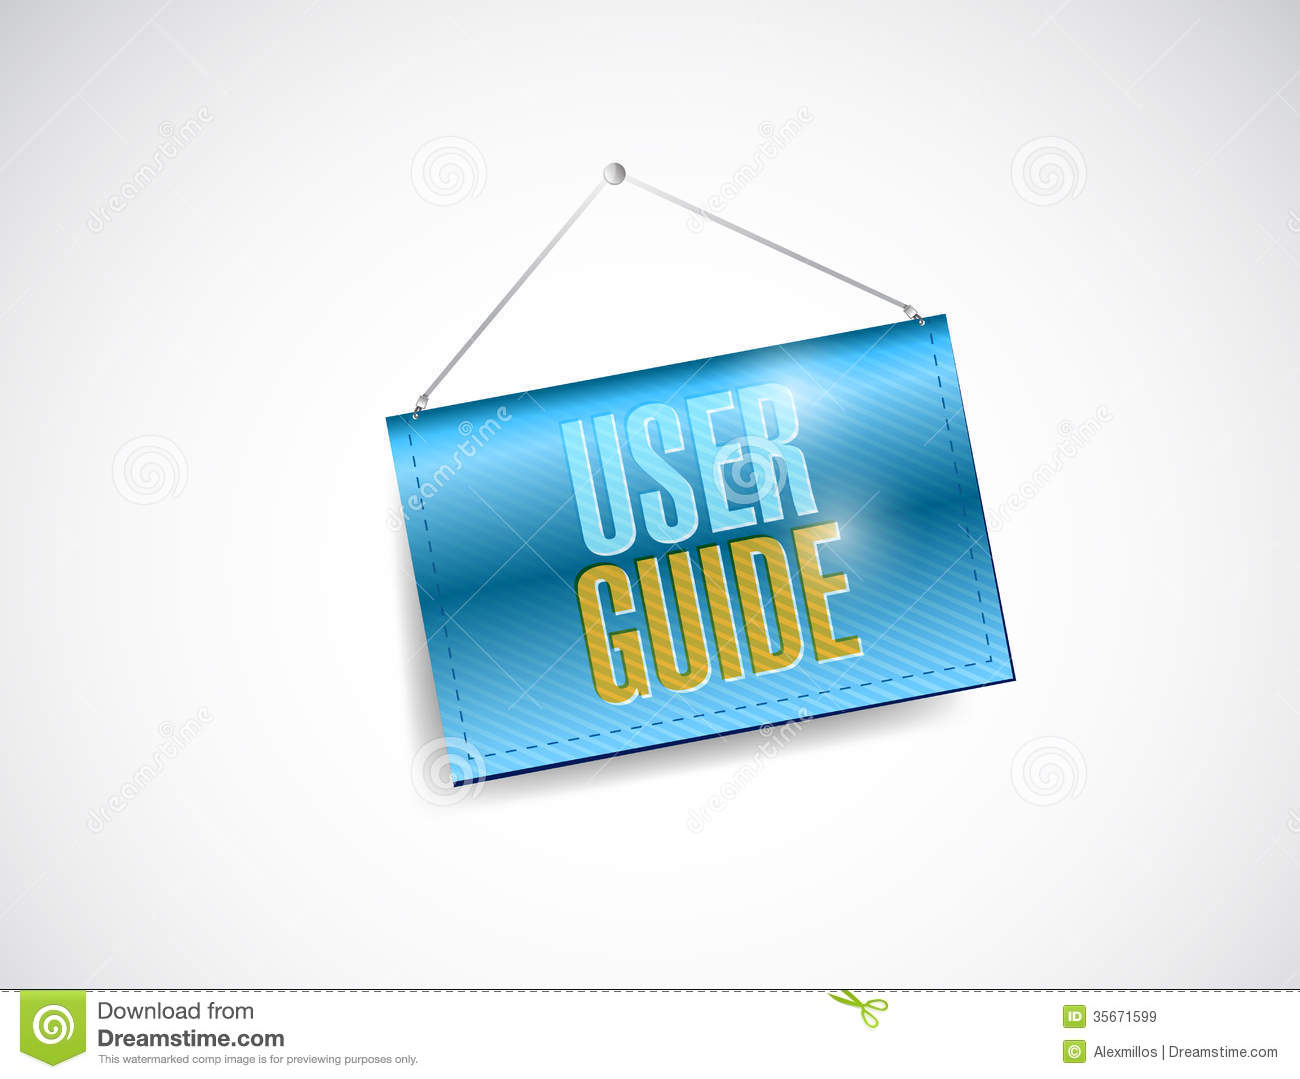 User guide clipart.